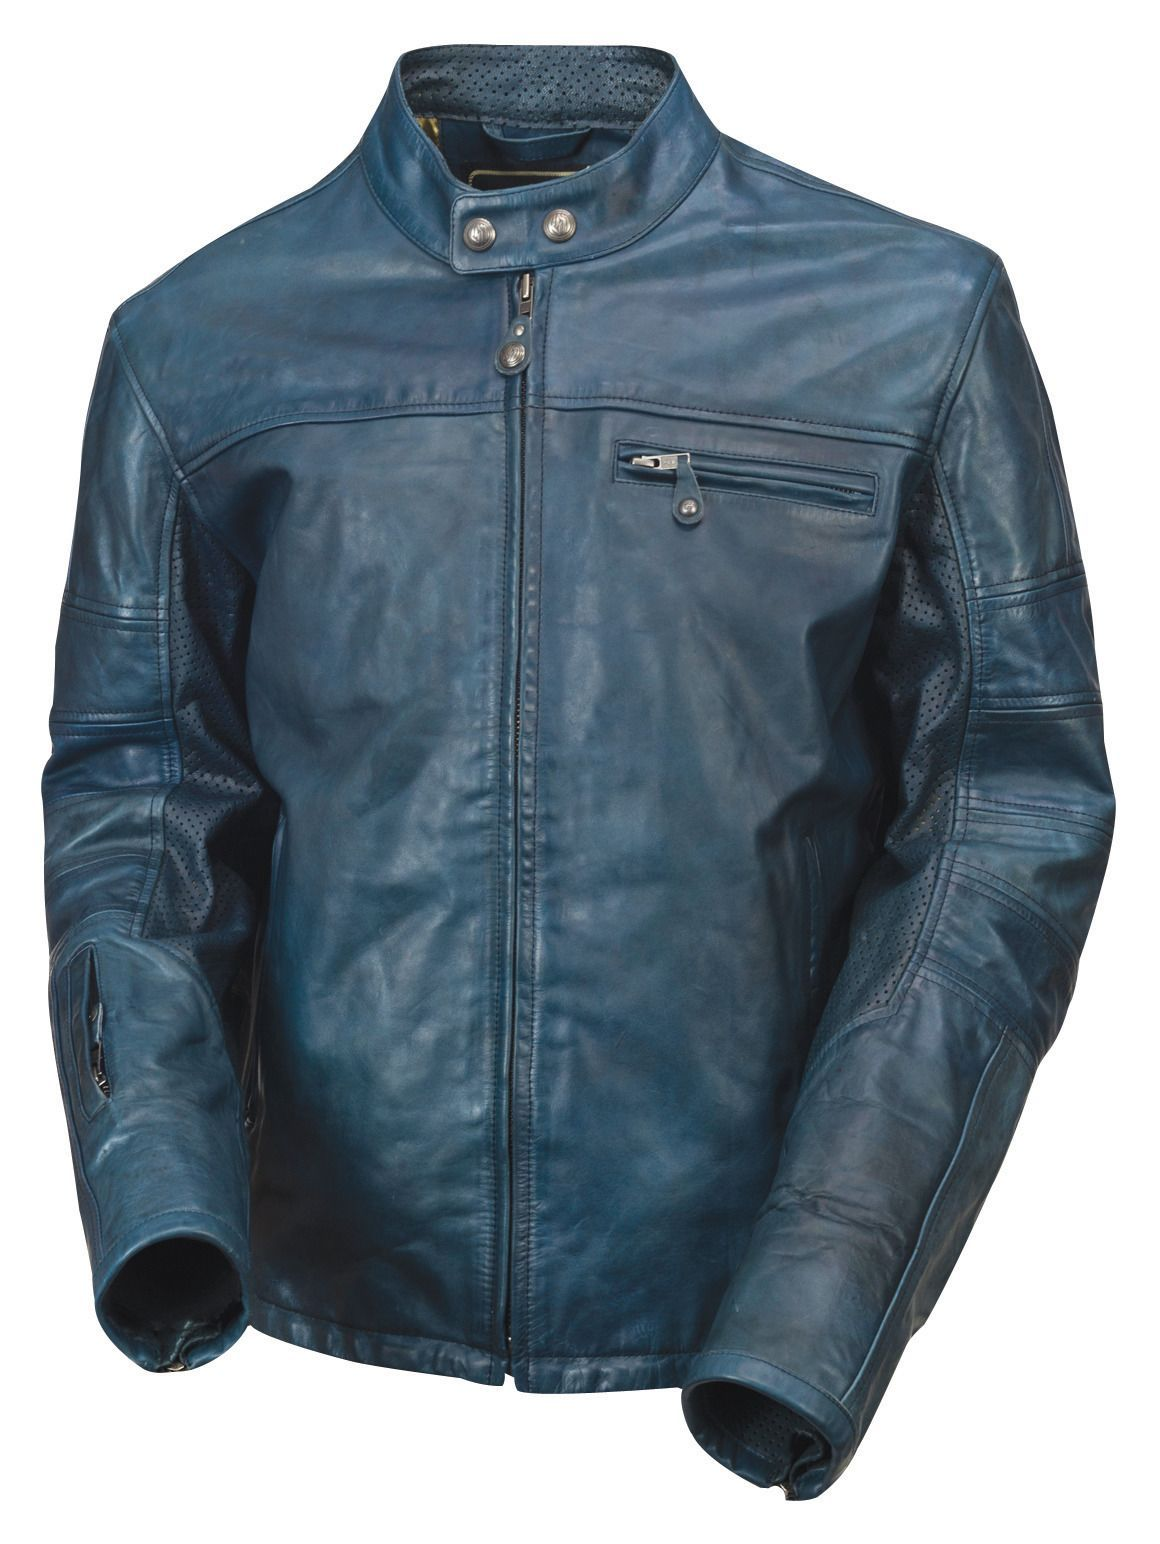 3884b22dc978 The RSD Ronin Leather Jacket is an exercise in nostalgic design blended  with…